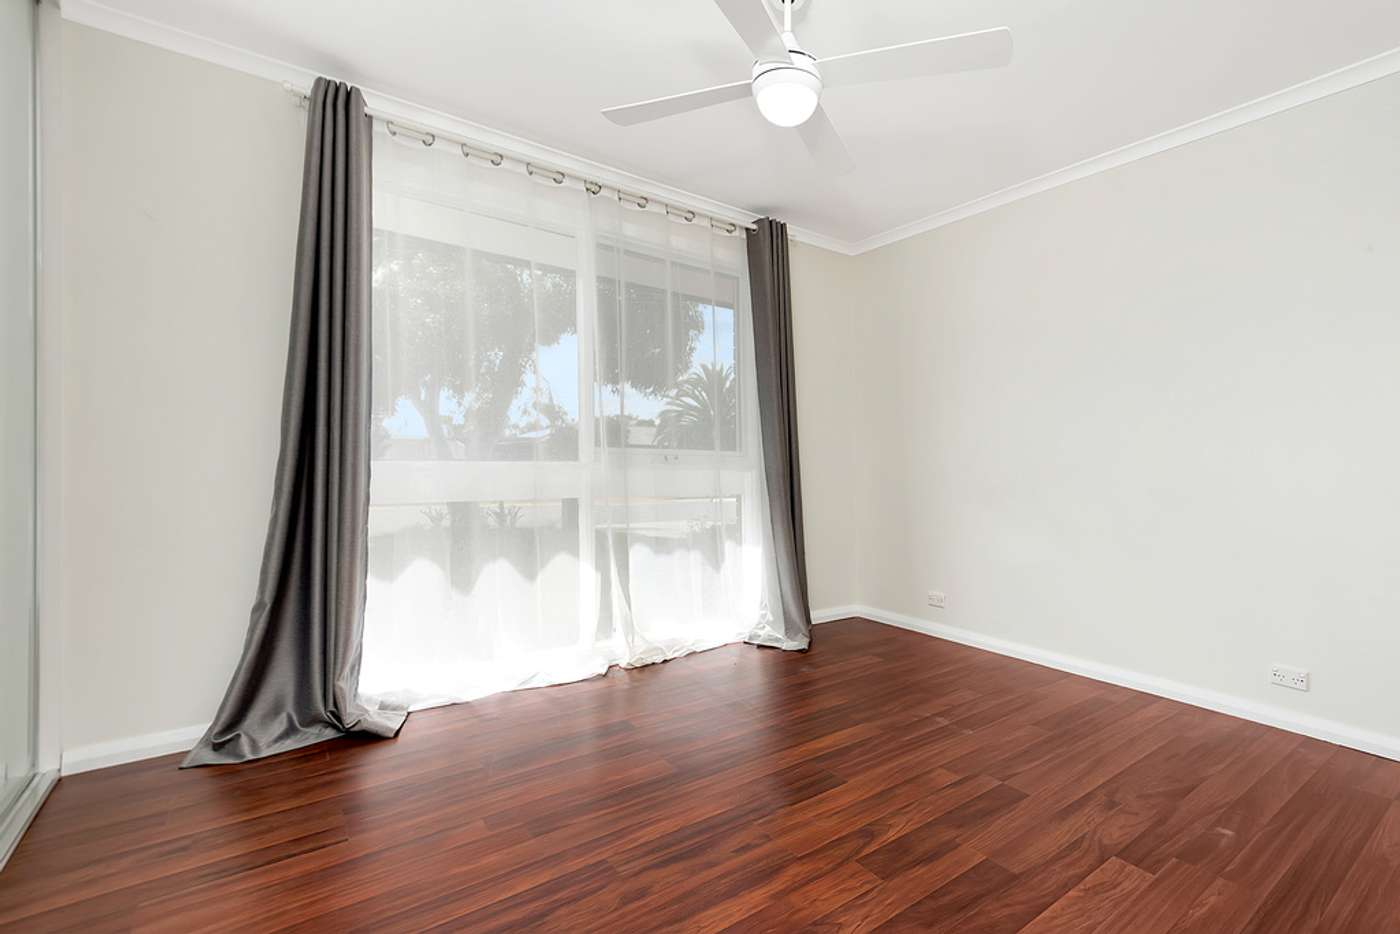 Sixth view of Homely house listing, 50 Sir Ross Smith Drive, North Haven SA 5018